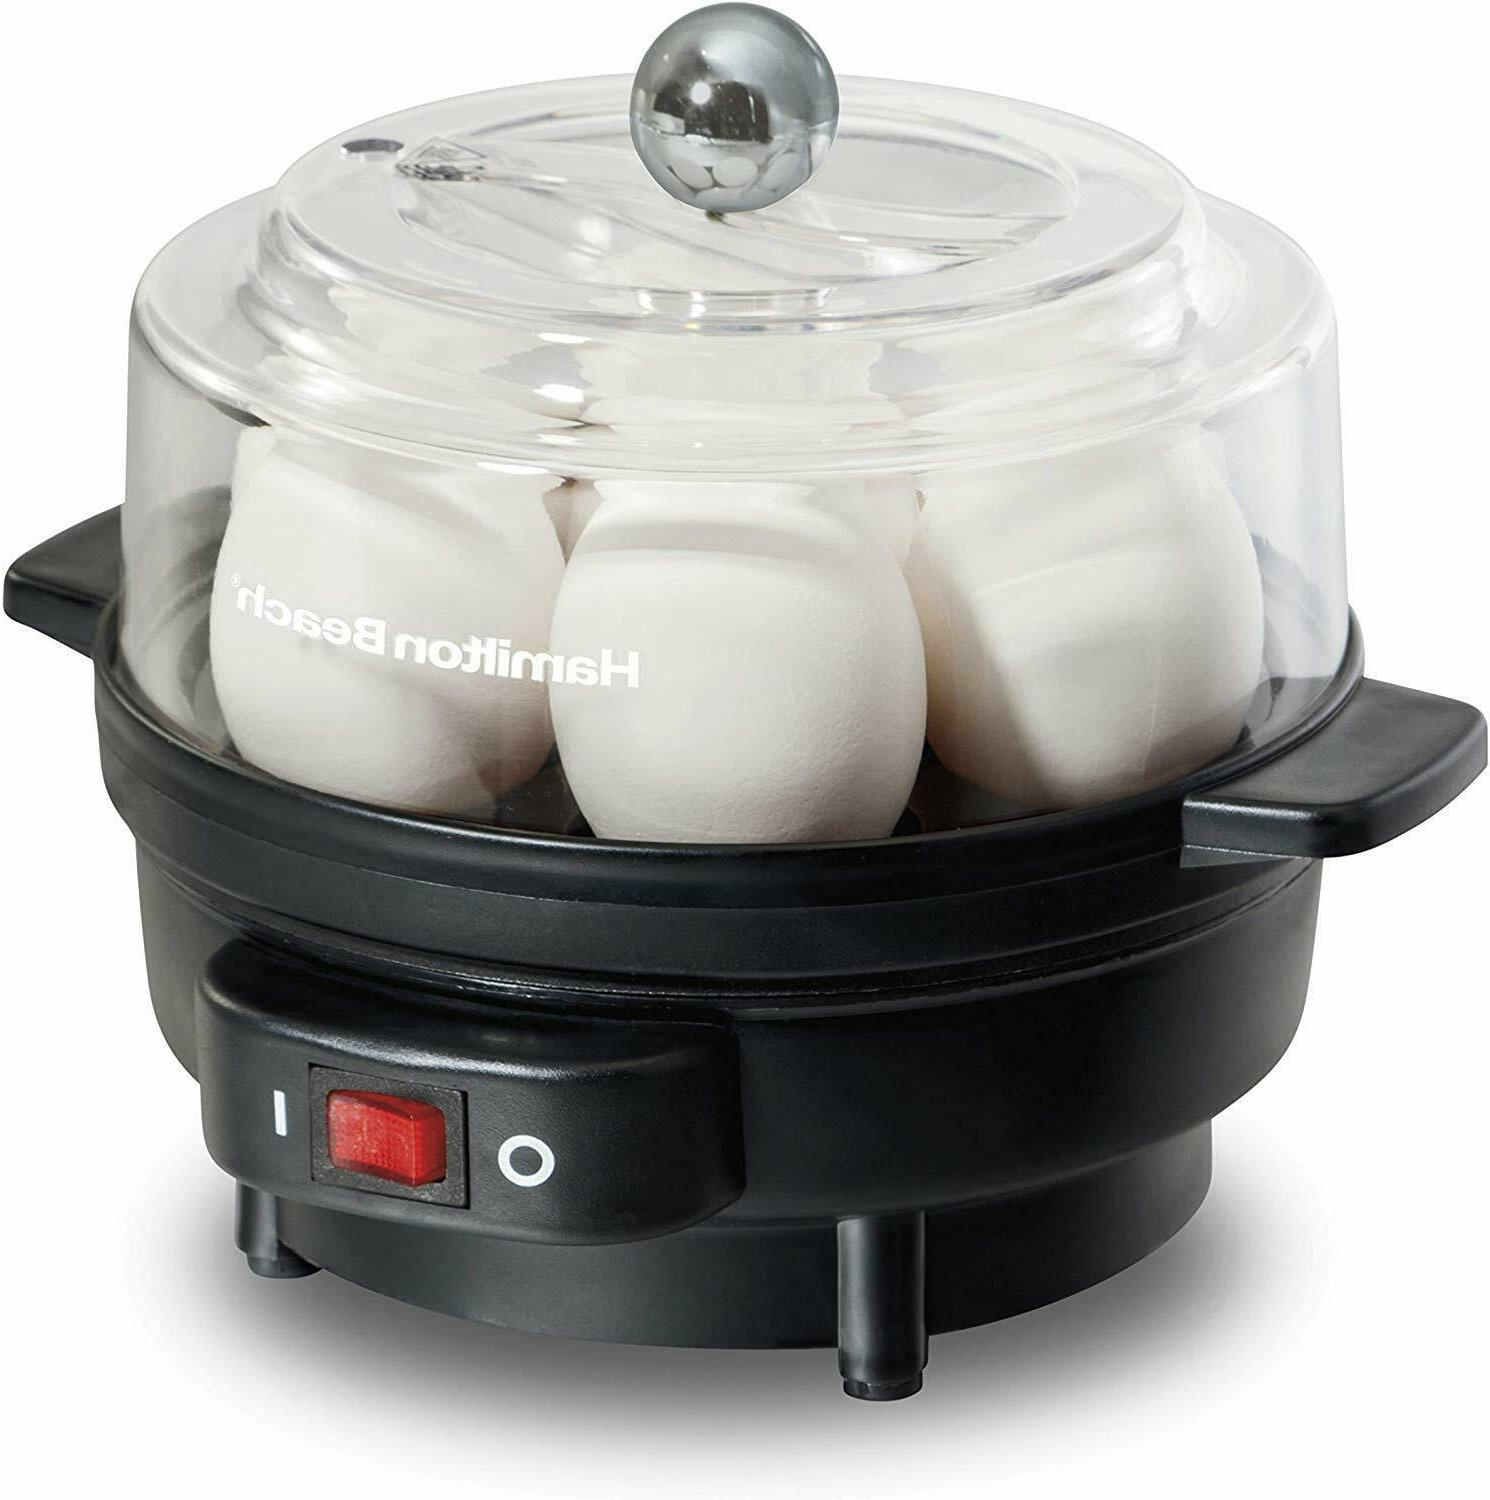 electric egg cooker and poacher for soft